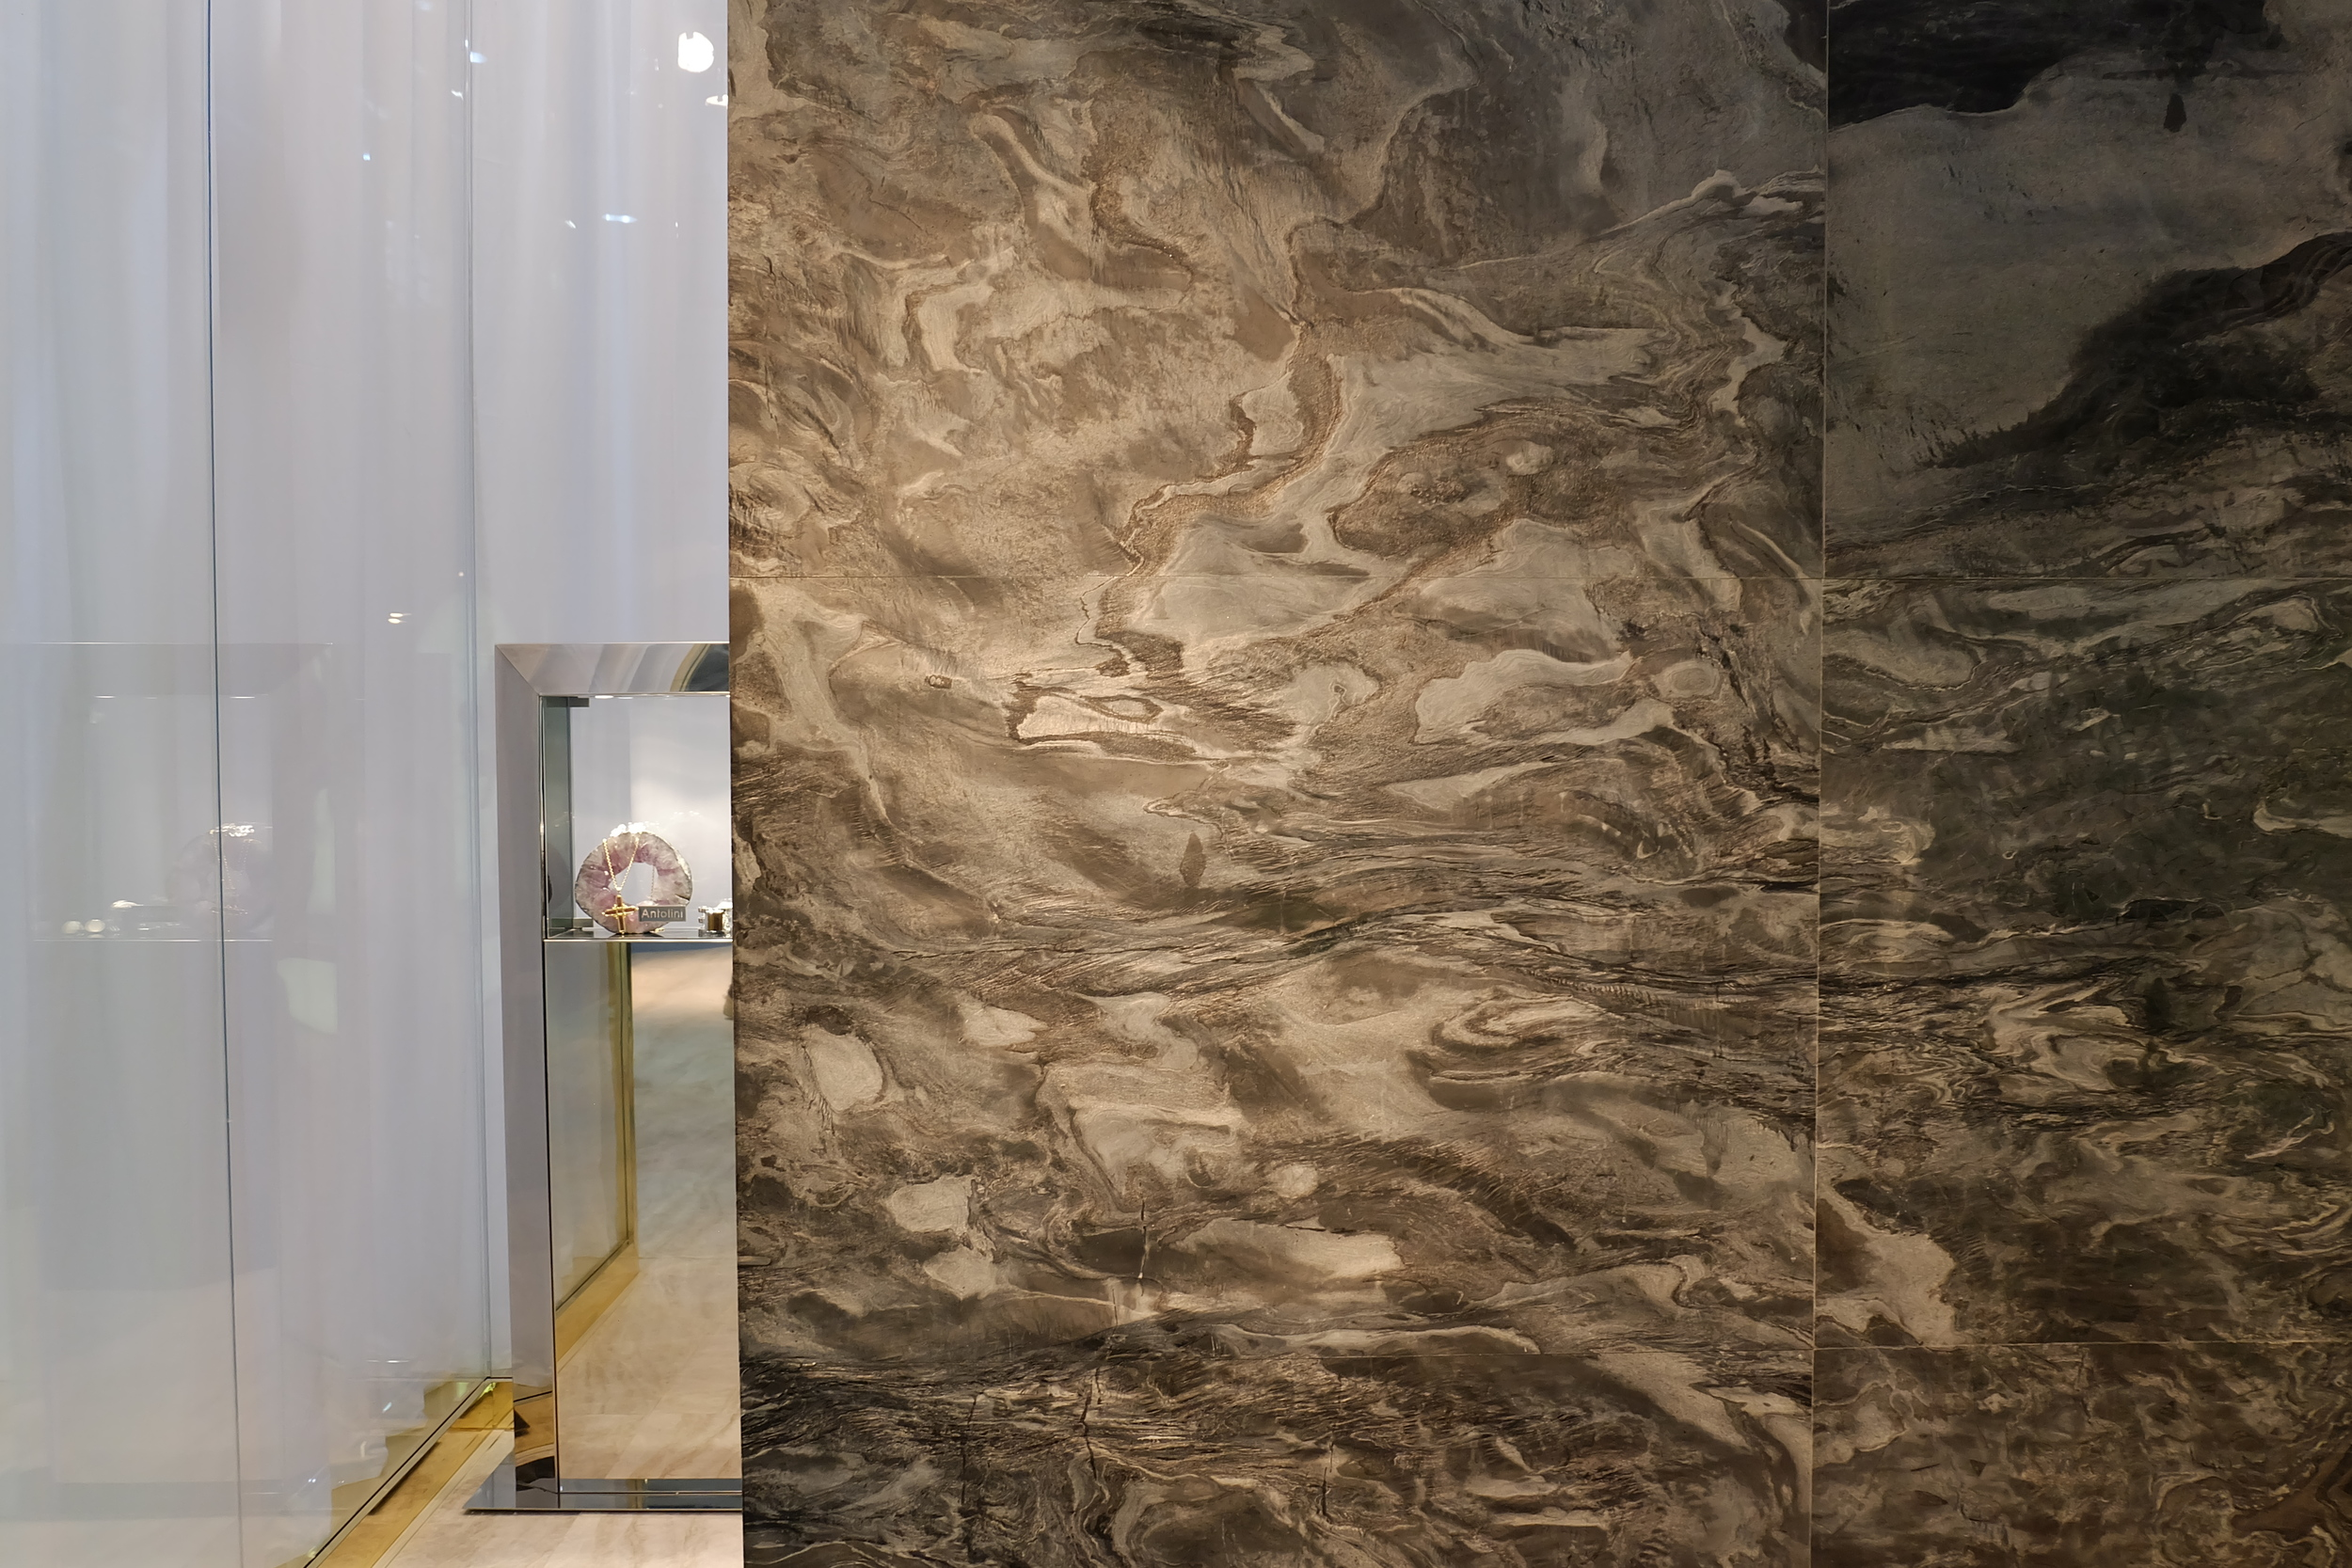 Maison & Objet 2016 Highlights - Unique wall panelling with gold accents | MSH Agency